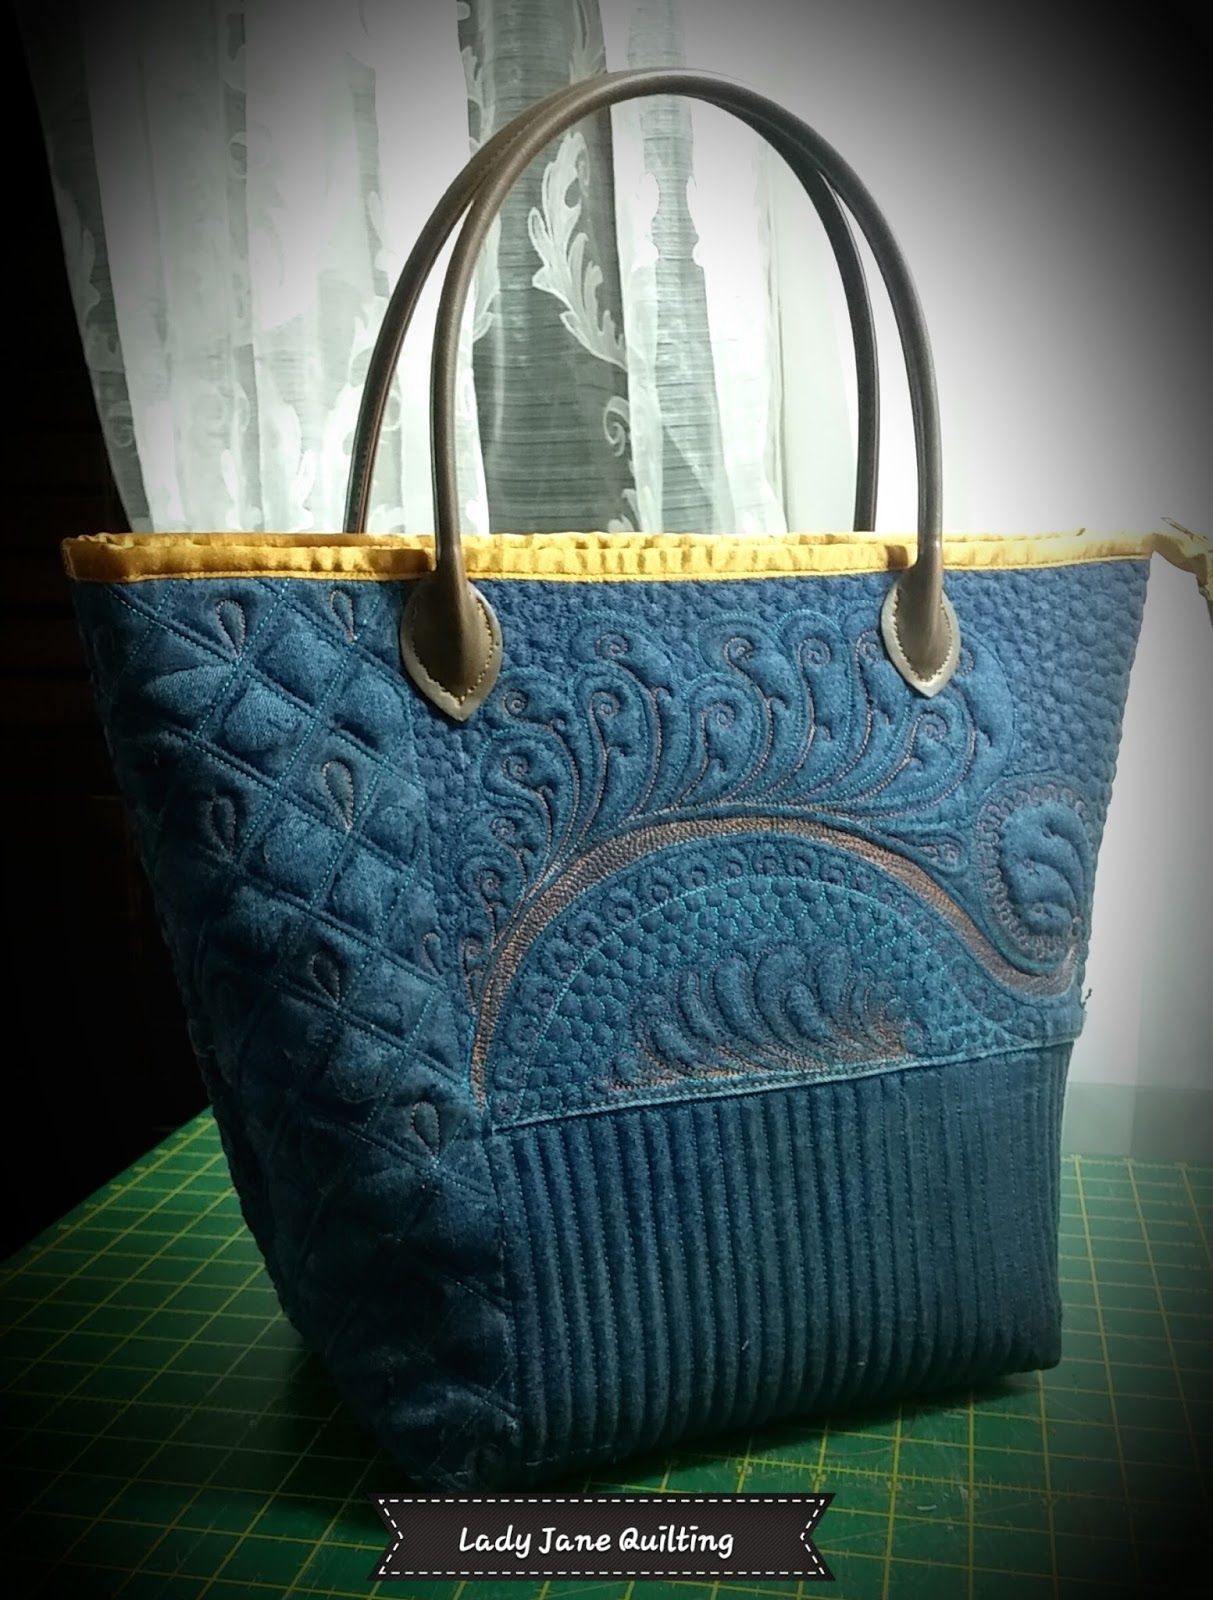 Quilting Patterns For Bags : Denim bag quilted by Telene Jeffrey Lady Jane Quilting Recycled clothing projects ...